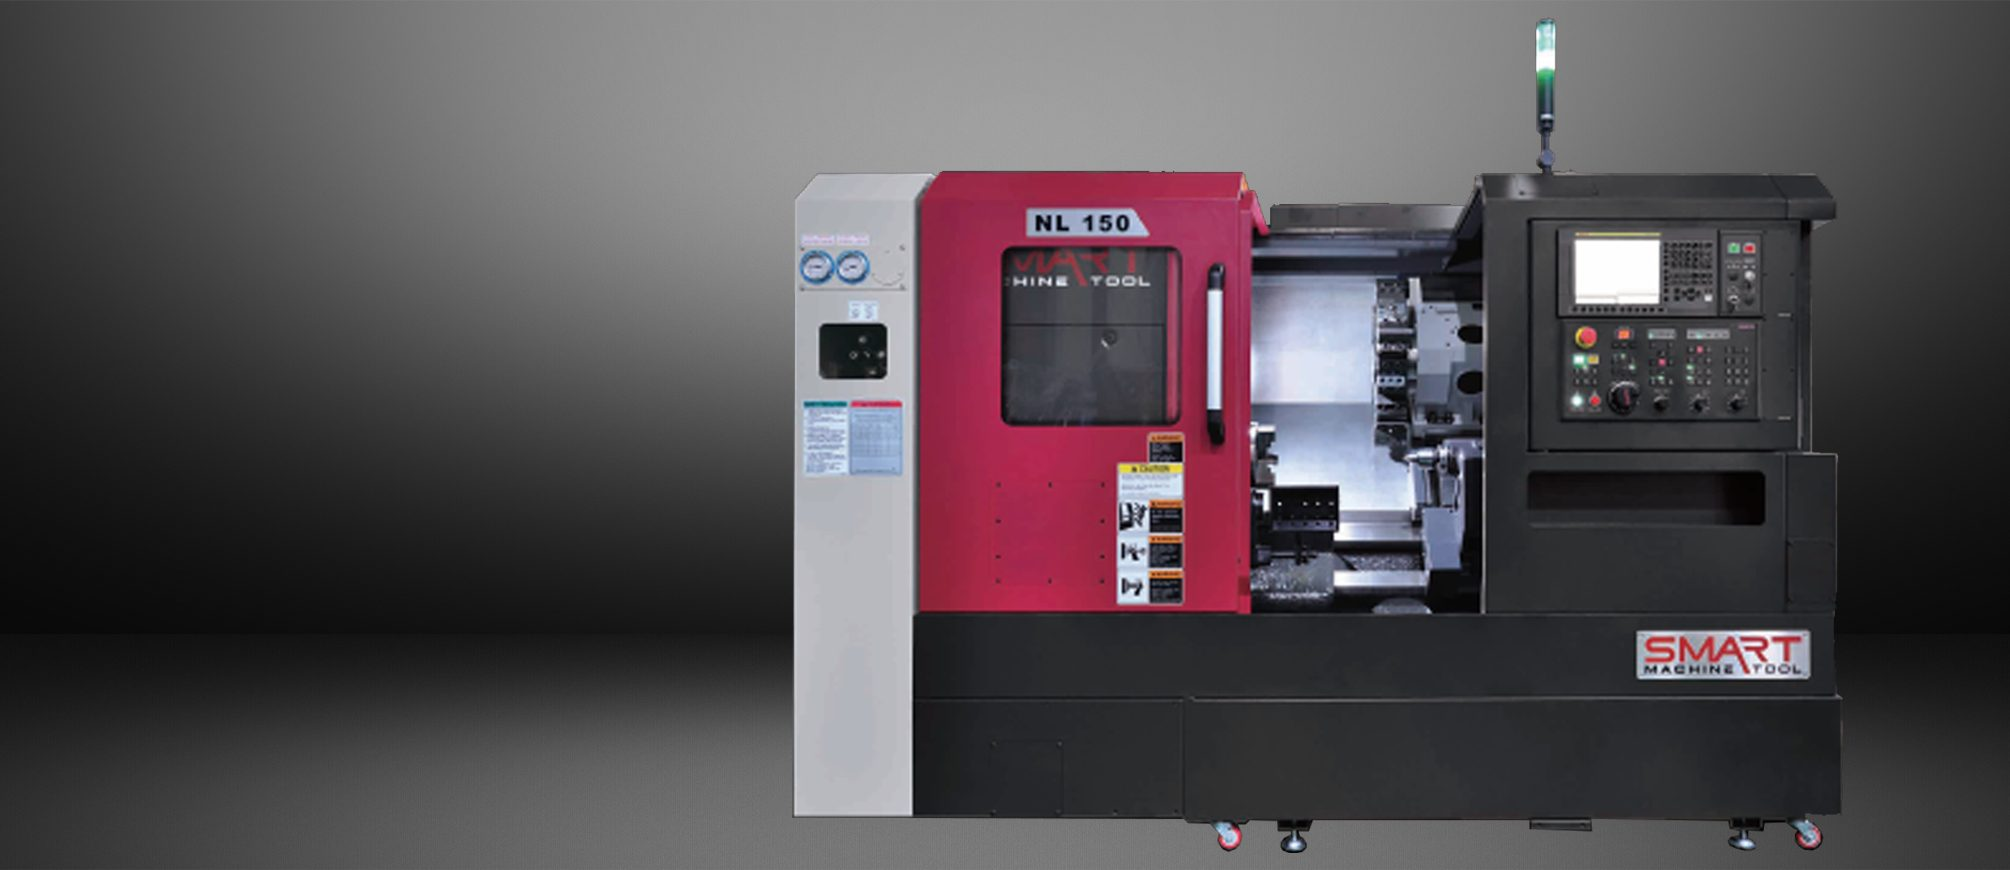 SMART NL 150 – BOX WAY – (6″ CHUCK) 2-Axis CNC Lathes